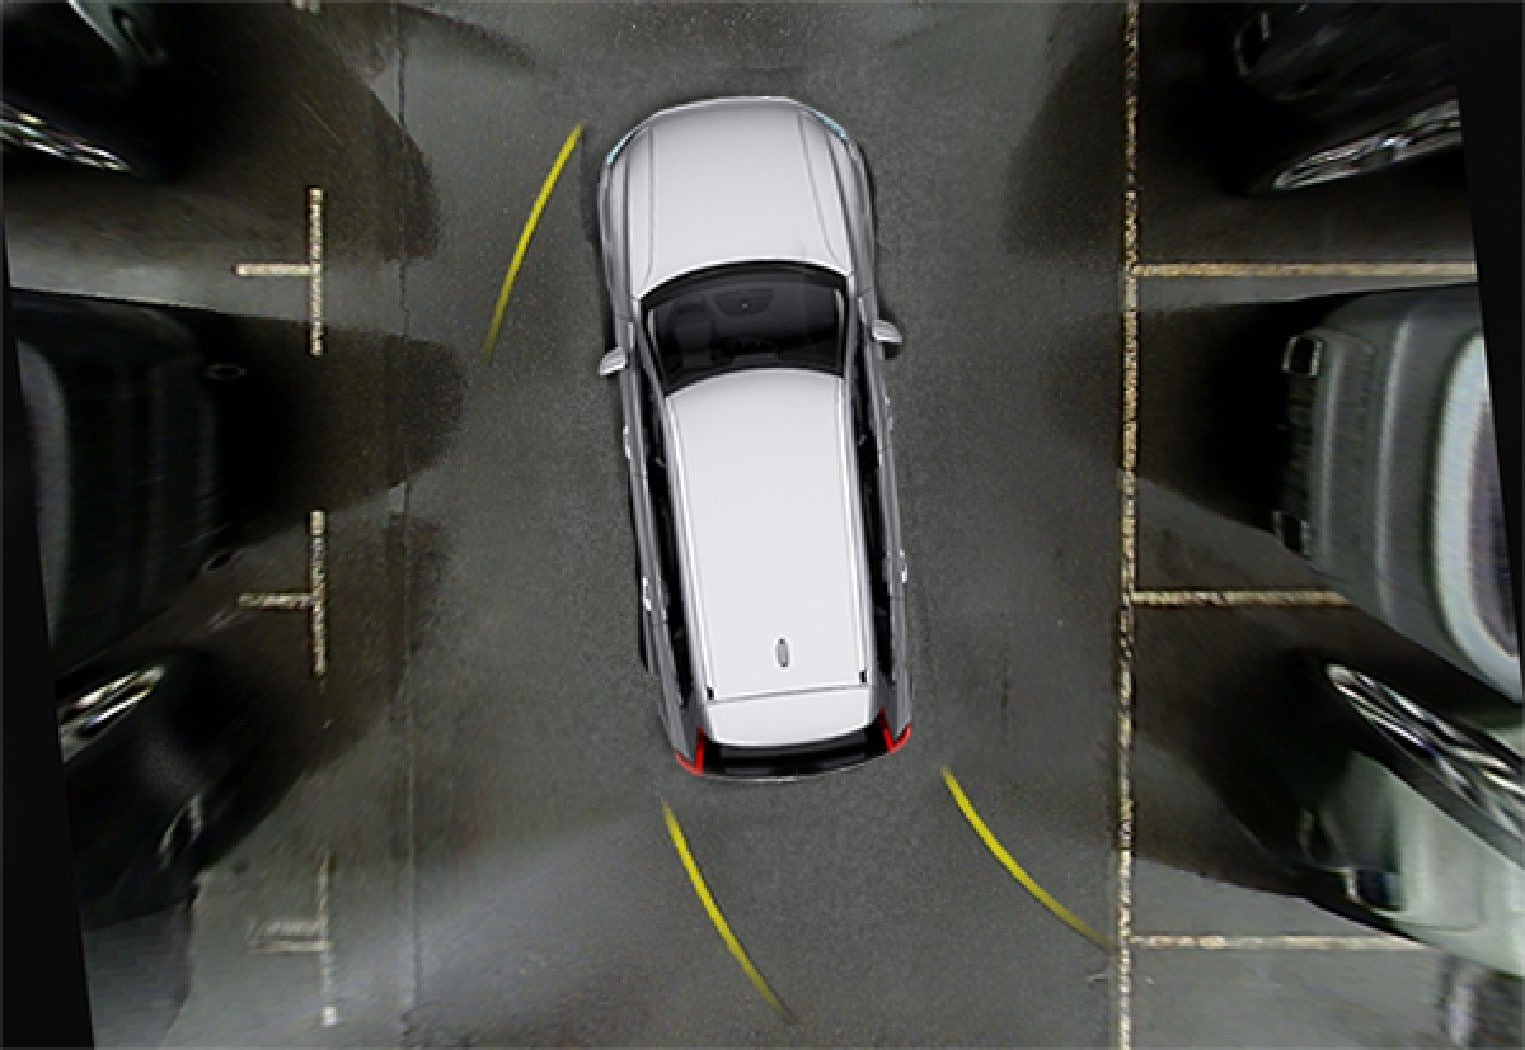 360° view with park assist lines.